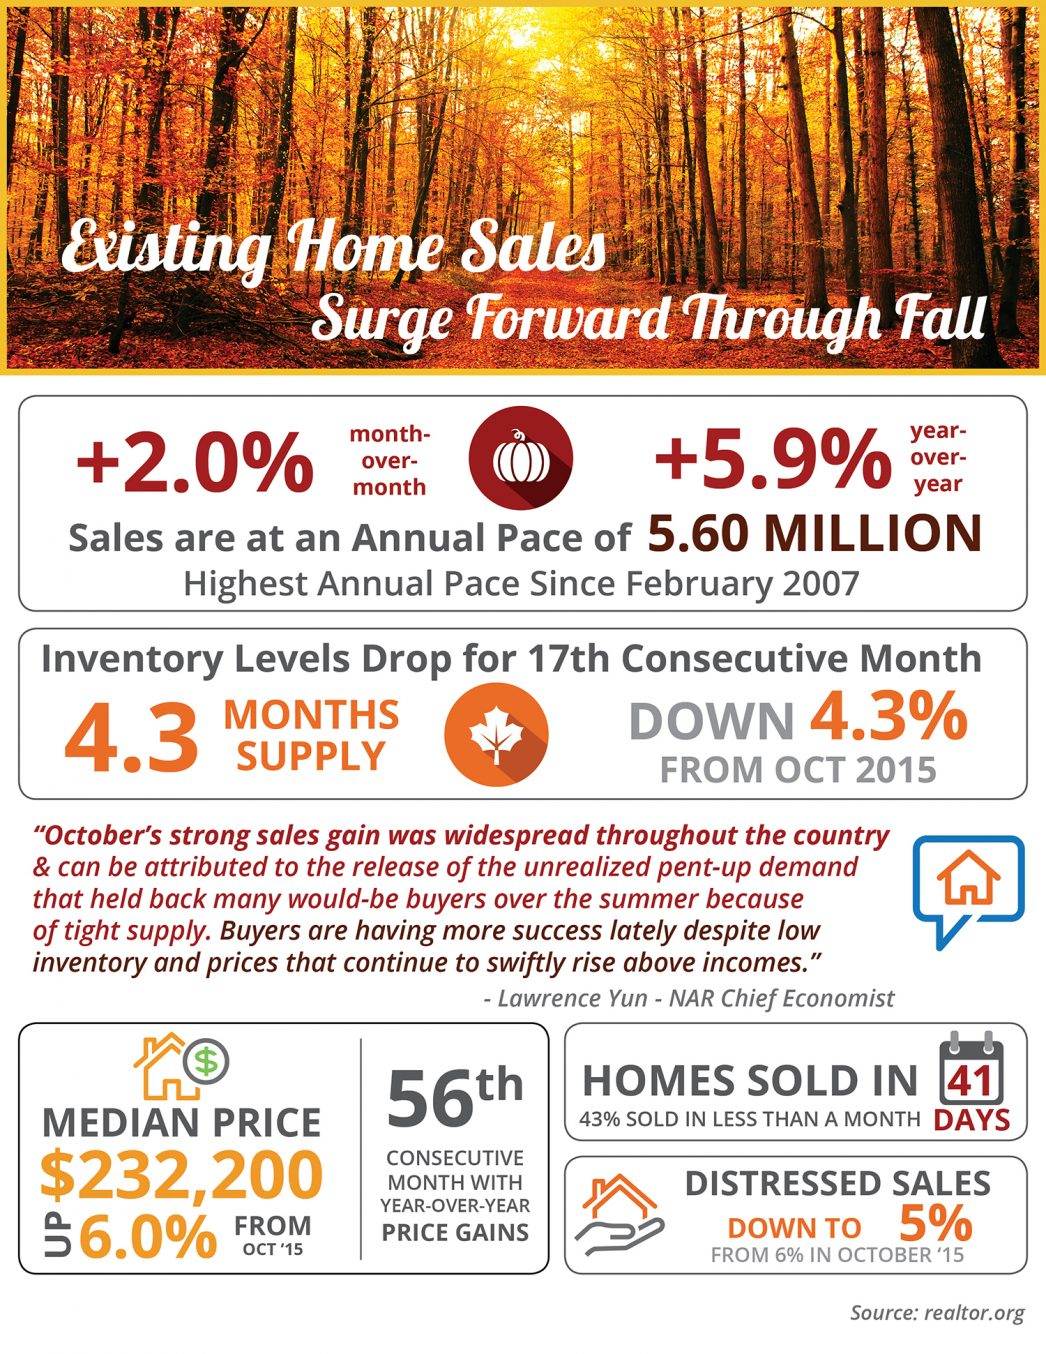 Existing Home Sales Surge Forward Through Fall [INFOGRAPHIC] | MyKCM